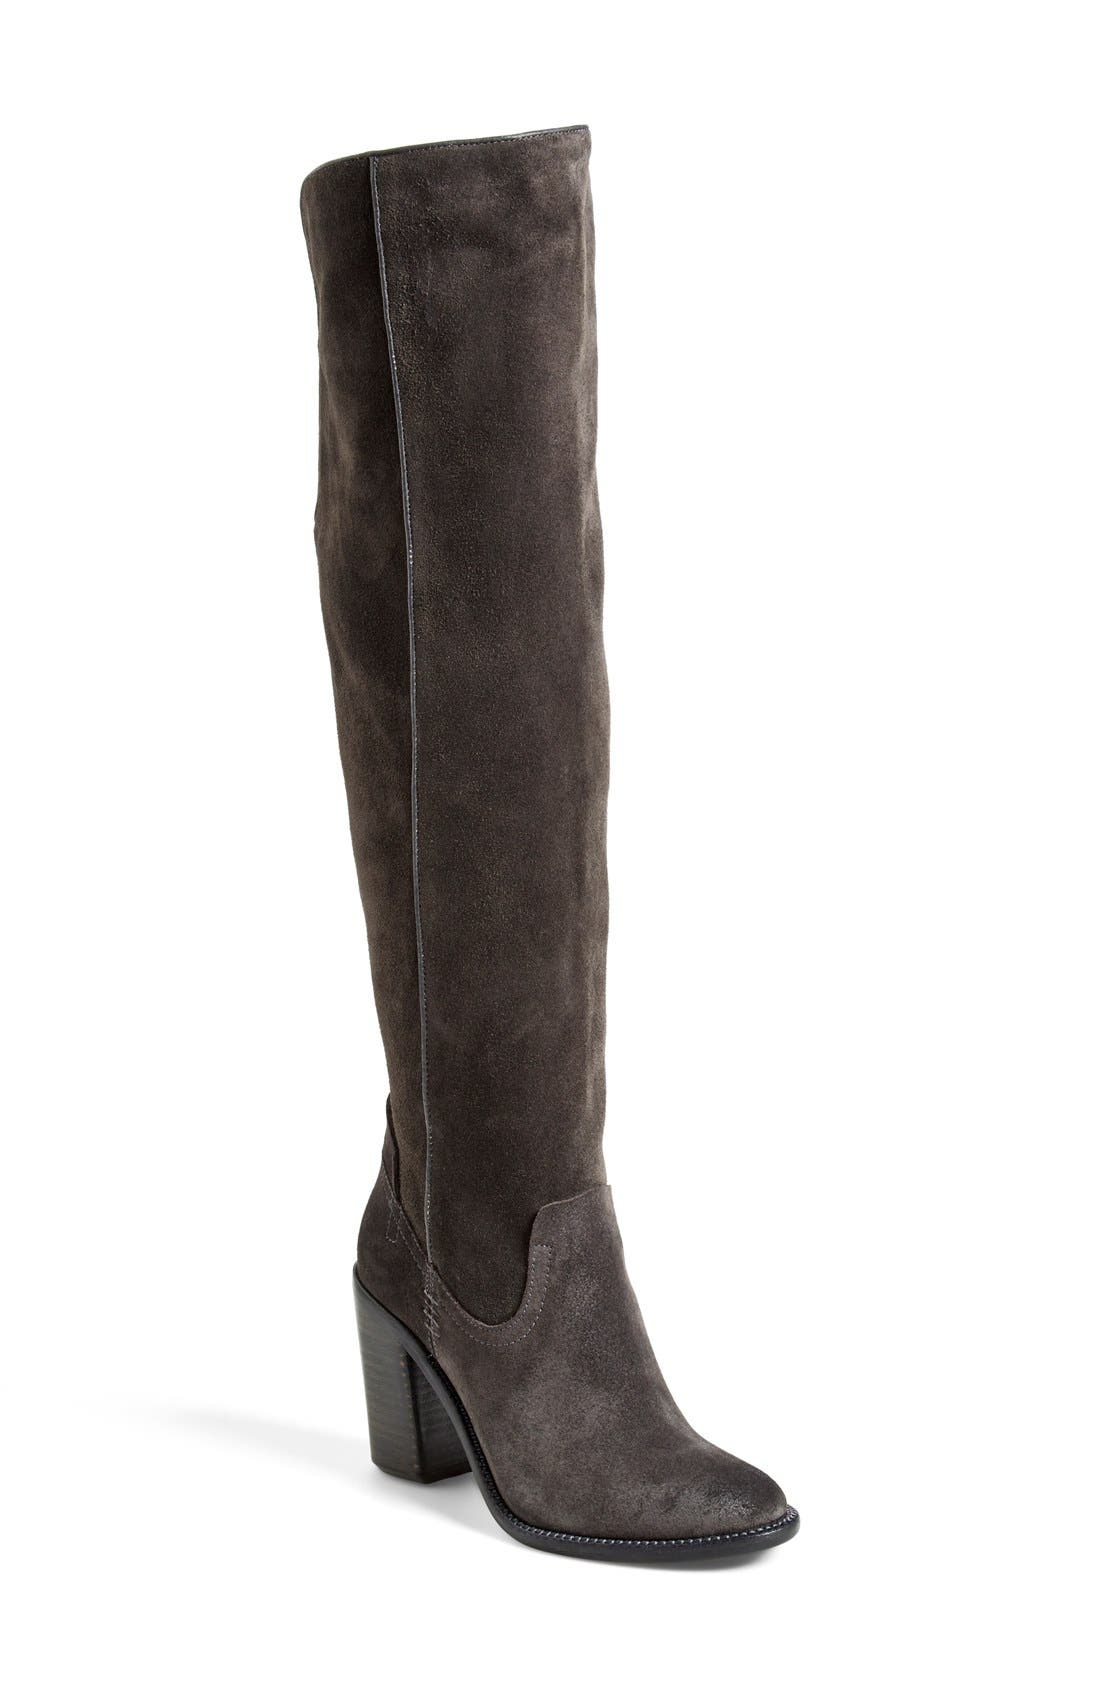 DOLCE VITA 'Ohanna' Over the Knee Boot, Main, color, 053